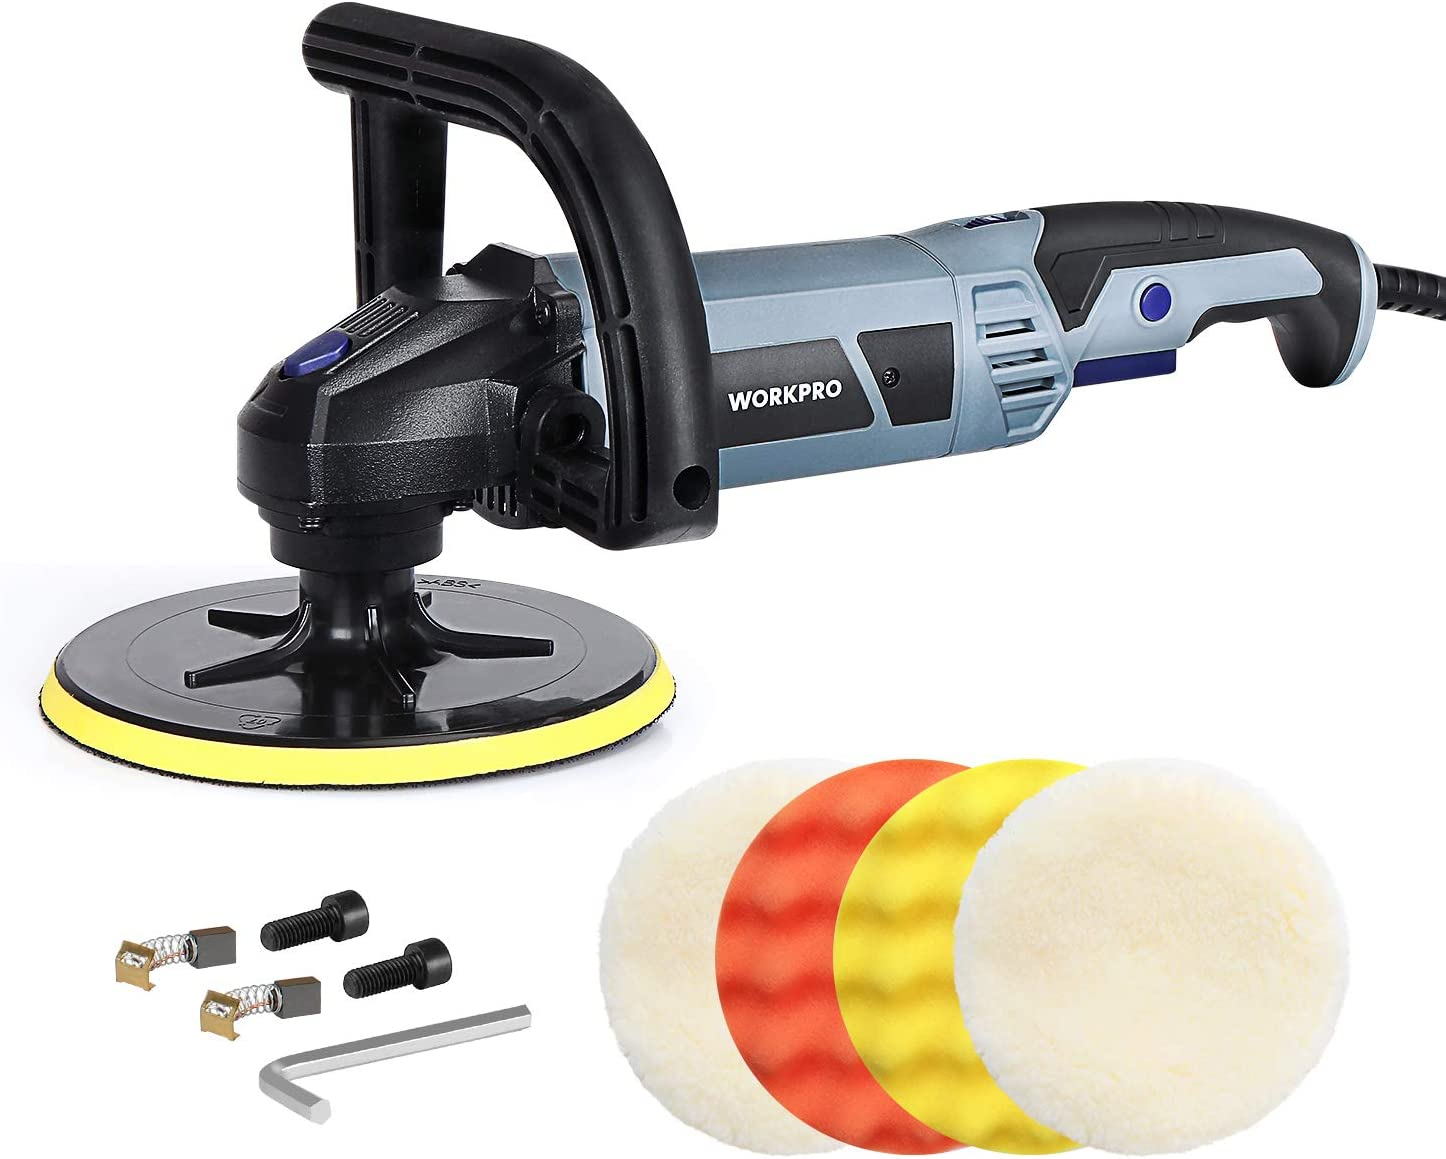 WORKPRO Buffer Polisher - 7-inch Buffer Waxer with 4 Buffing and Polishing Pads, 6 Variable Speed 1000-3800 RPM, Detachable Handle, Ideal for Car Sanding, Polishing, Waxing, Sealing Glaze - -